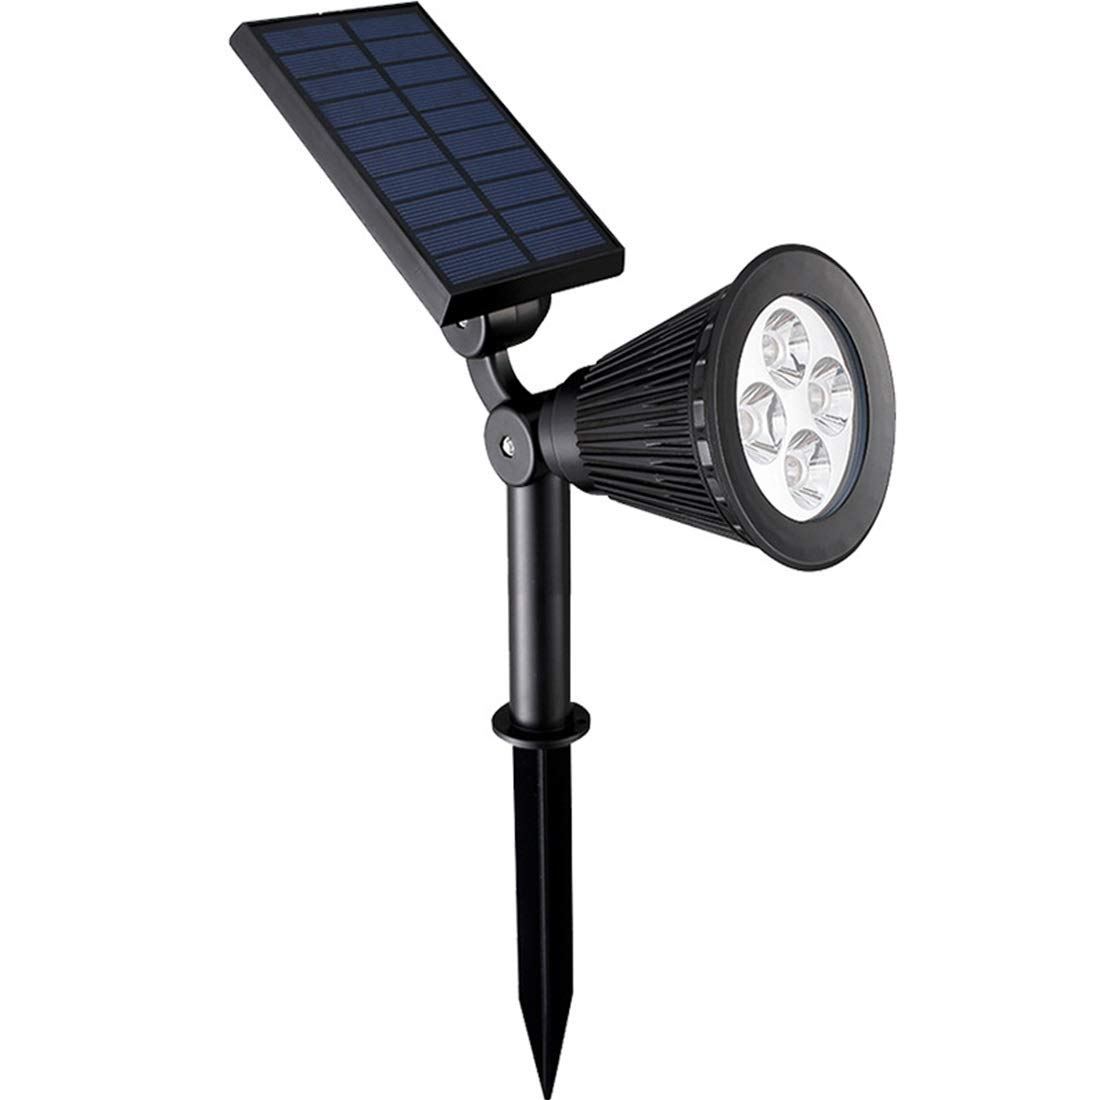 Sububblepper Solar Lights Outdoor, Waterproof 4 LED Solar Spotlight Adjustable Wall Light Landscape Light Easy-to-Install Security Lights for Patio, Deck, Yard, Garden (Color : Cold White)